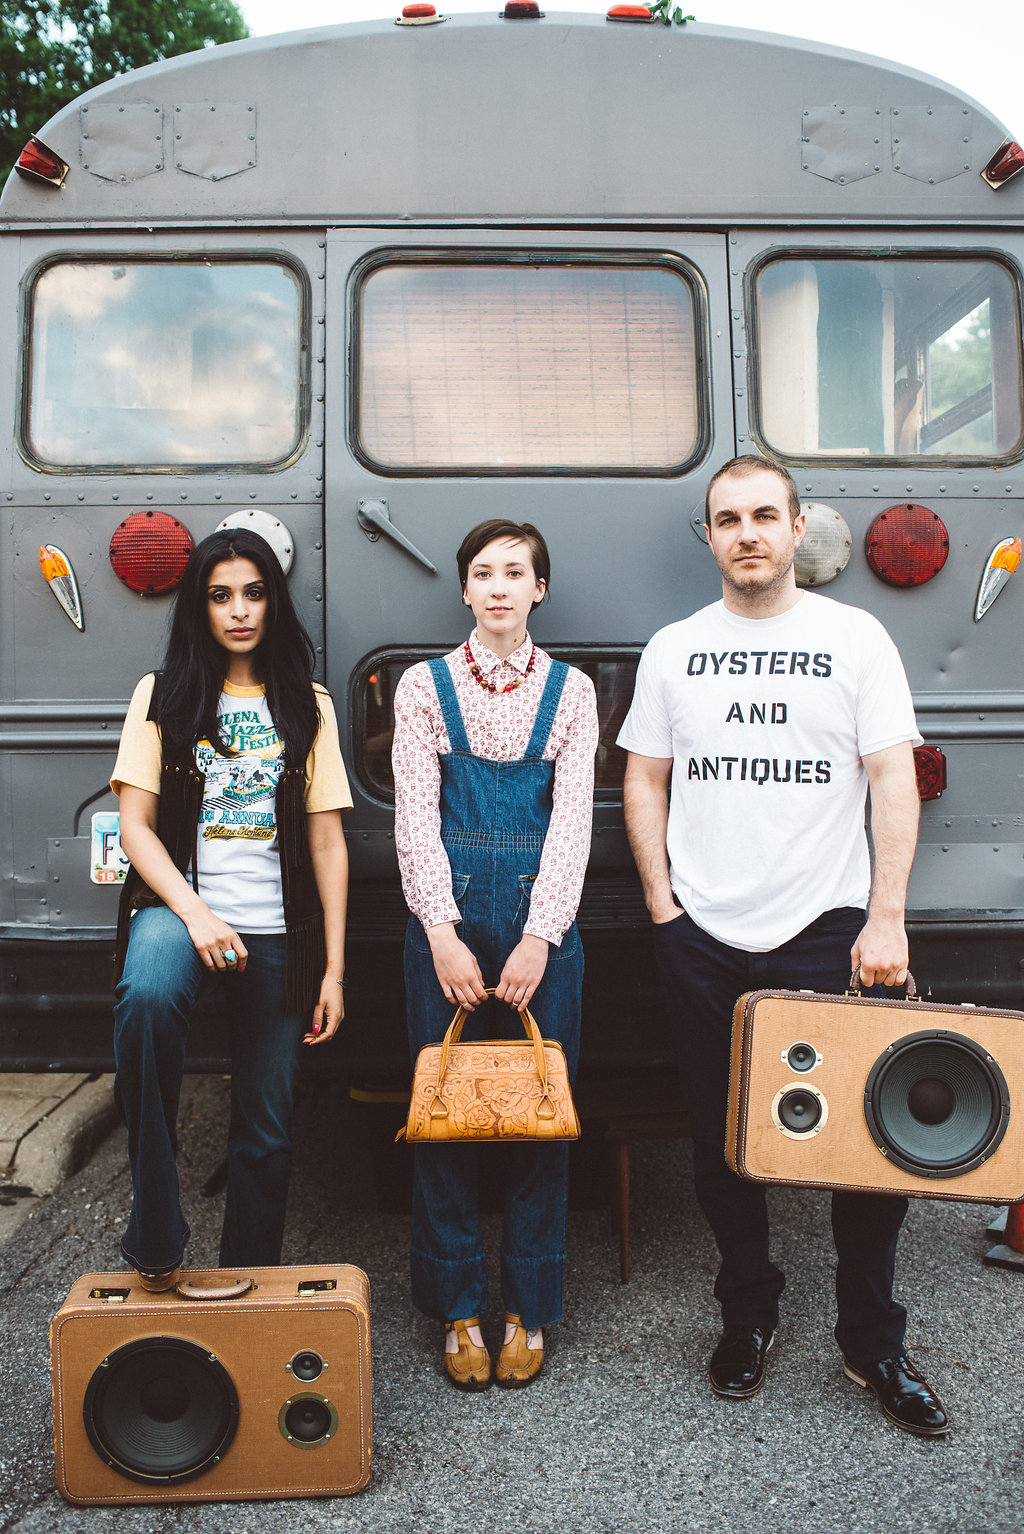 Suzuran Photography (also featuring Gizmo Audio, The Sweetest Chill & Great Lake Outfitters)